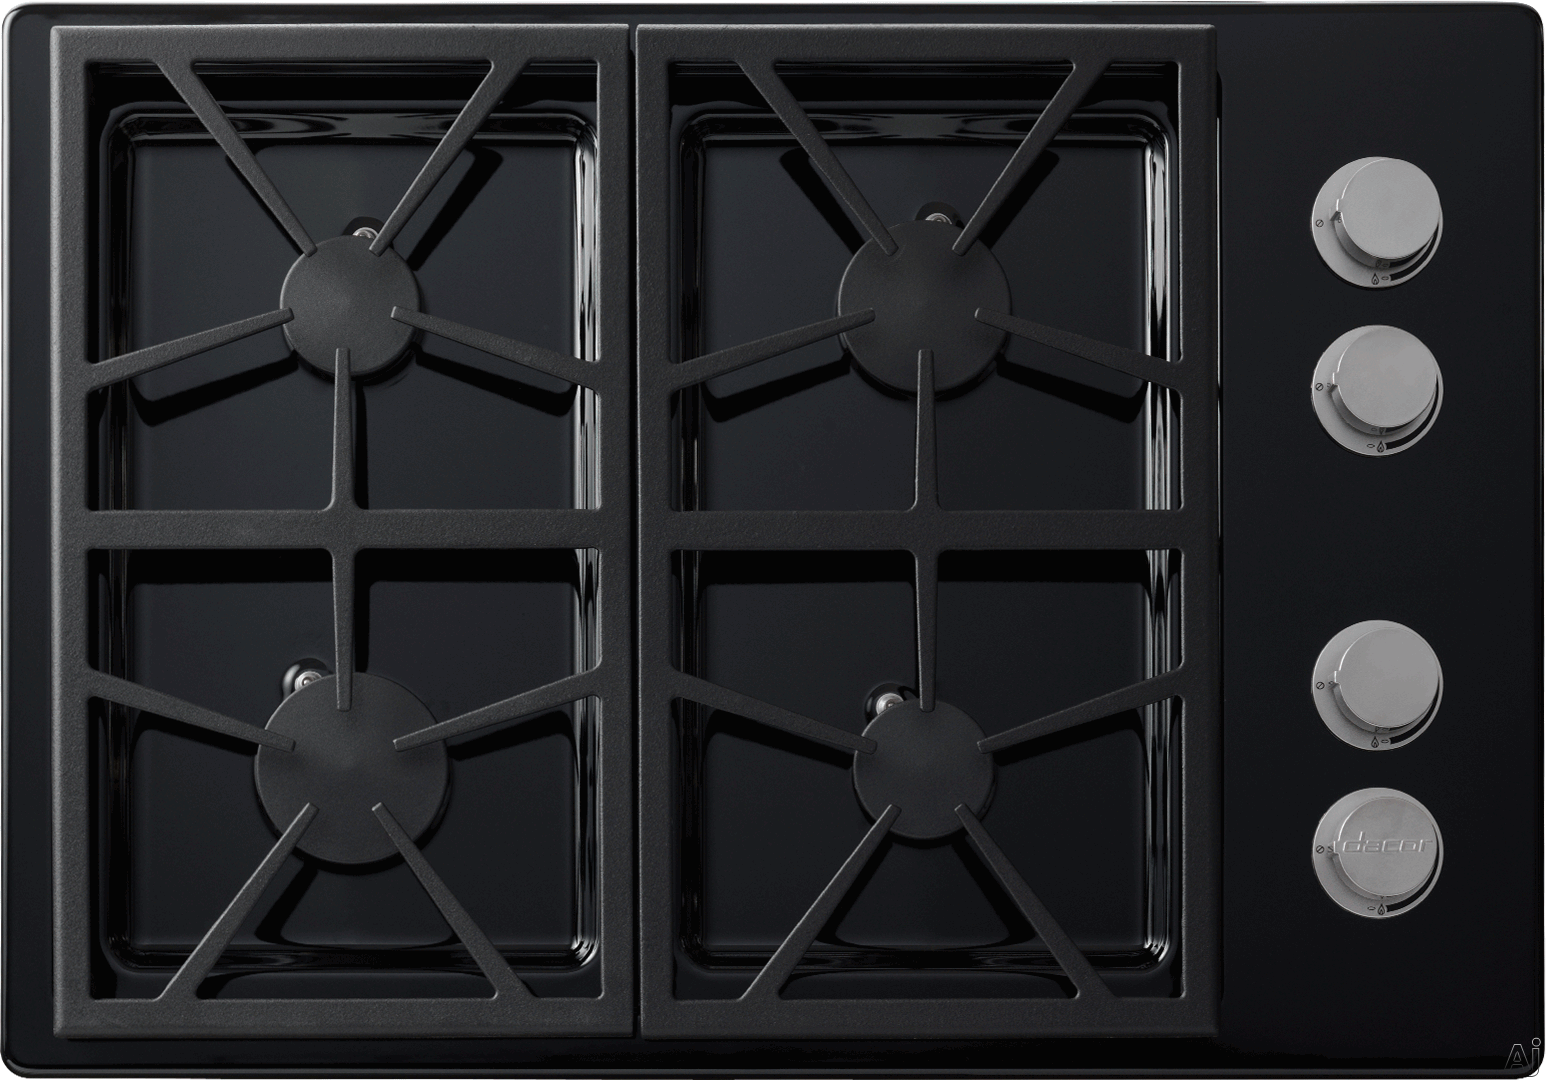 Dacor Distinctive DTCT304GBLPH 30 Inch Gas Cooktop with Perma-Flame Technology, SmartFlame Technology, Continuous Grates, 4 Sealed Burners, 43,500 BTUs, Spill Basin with PermaClean Finish and Downdraft Compatible: Black, Liquid Propane, High-Altitude